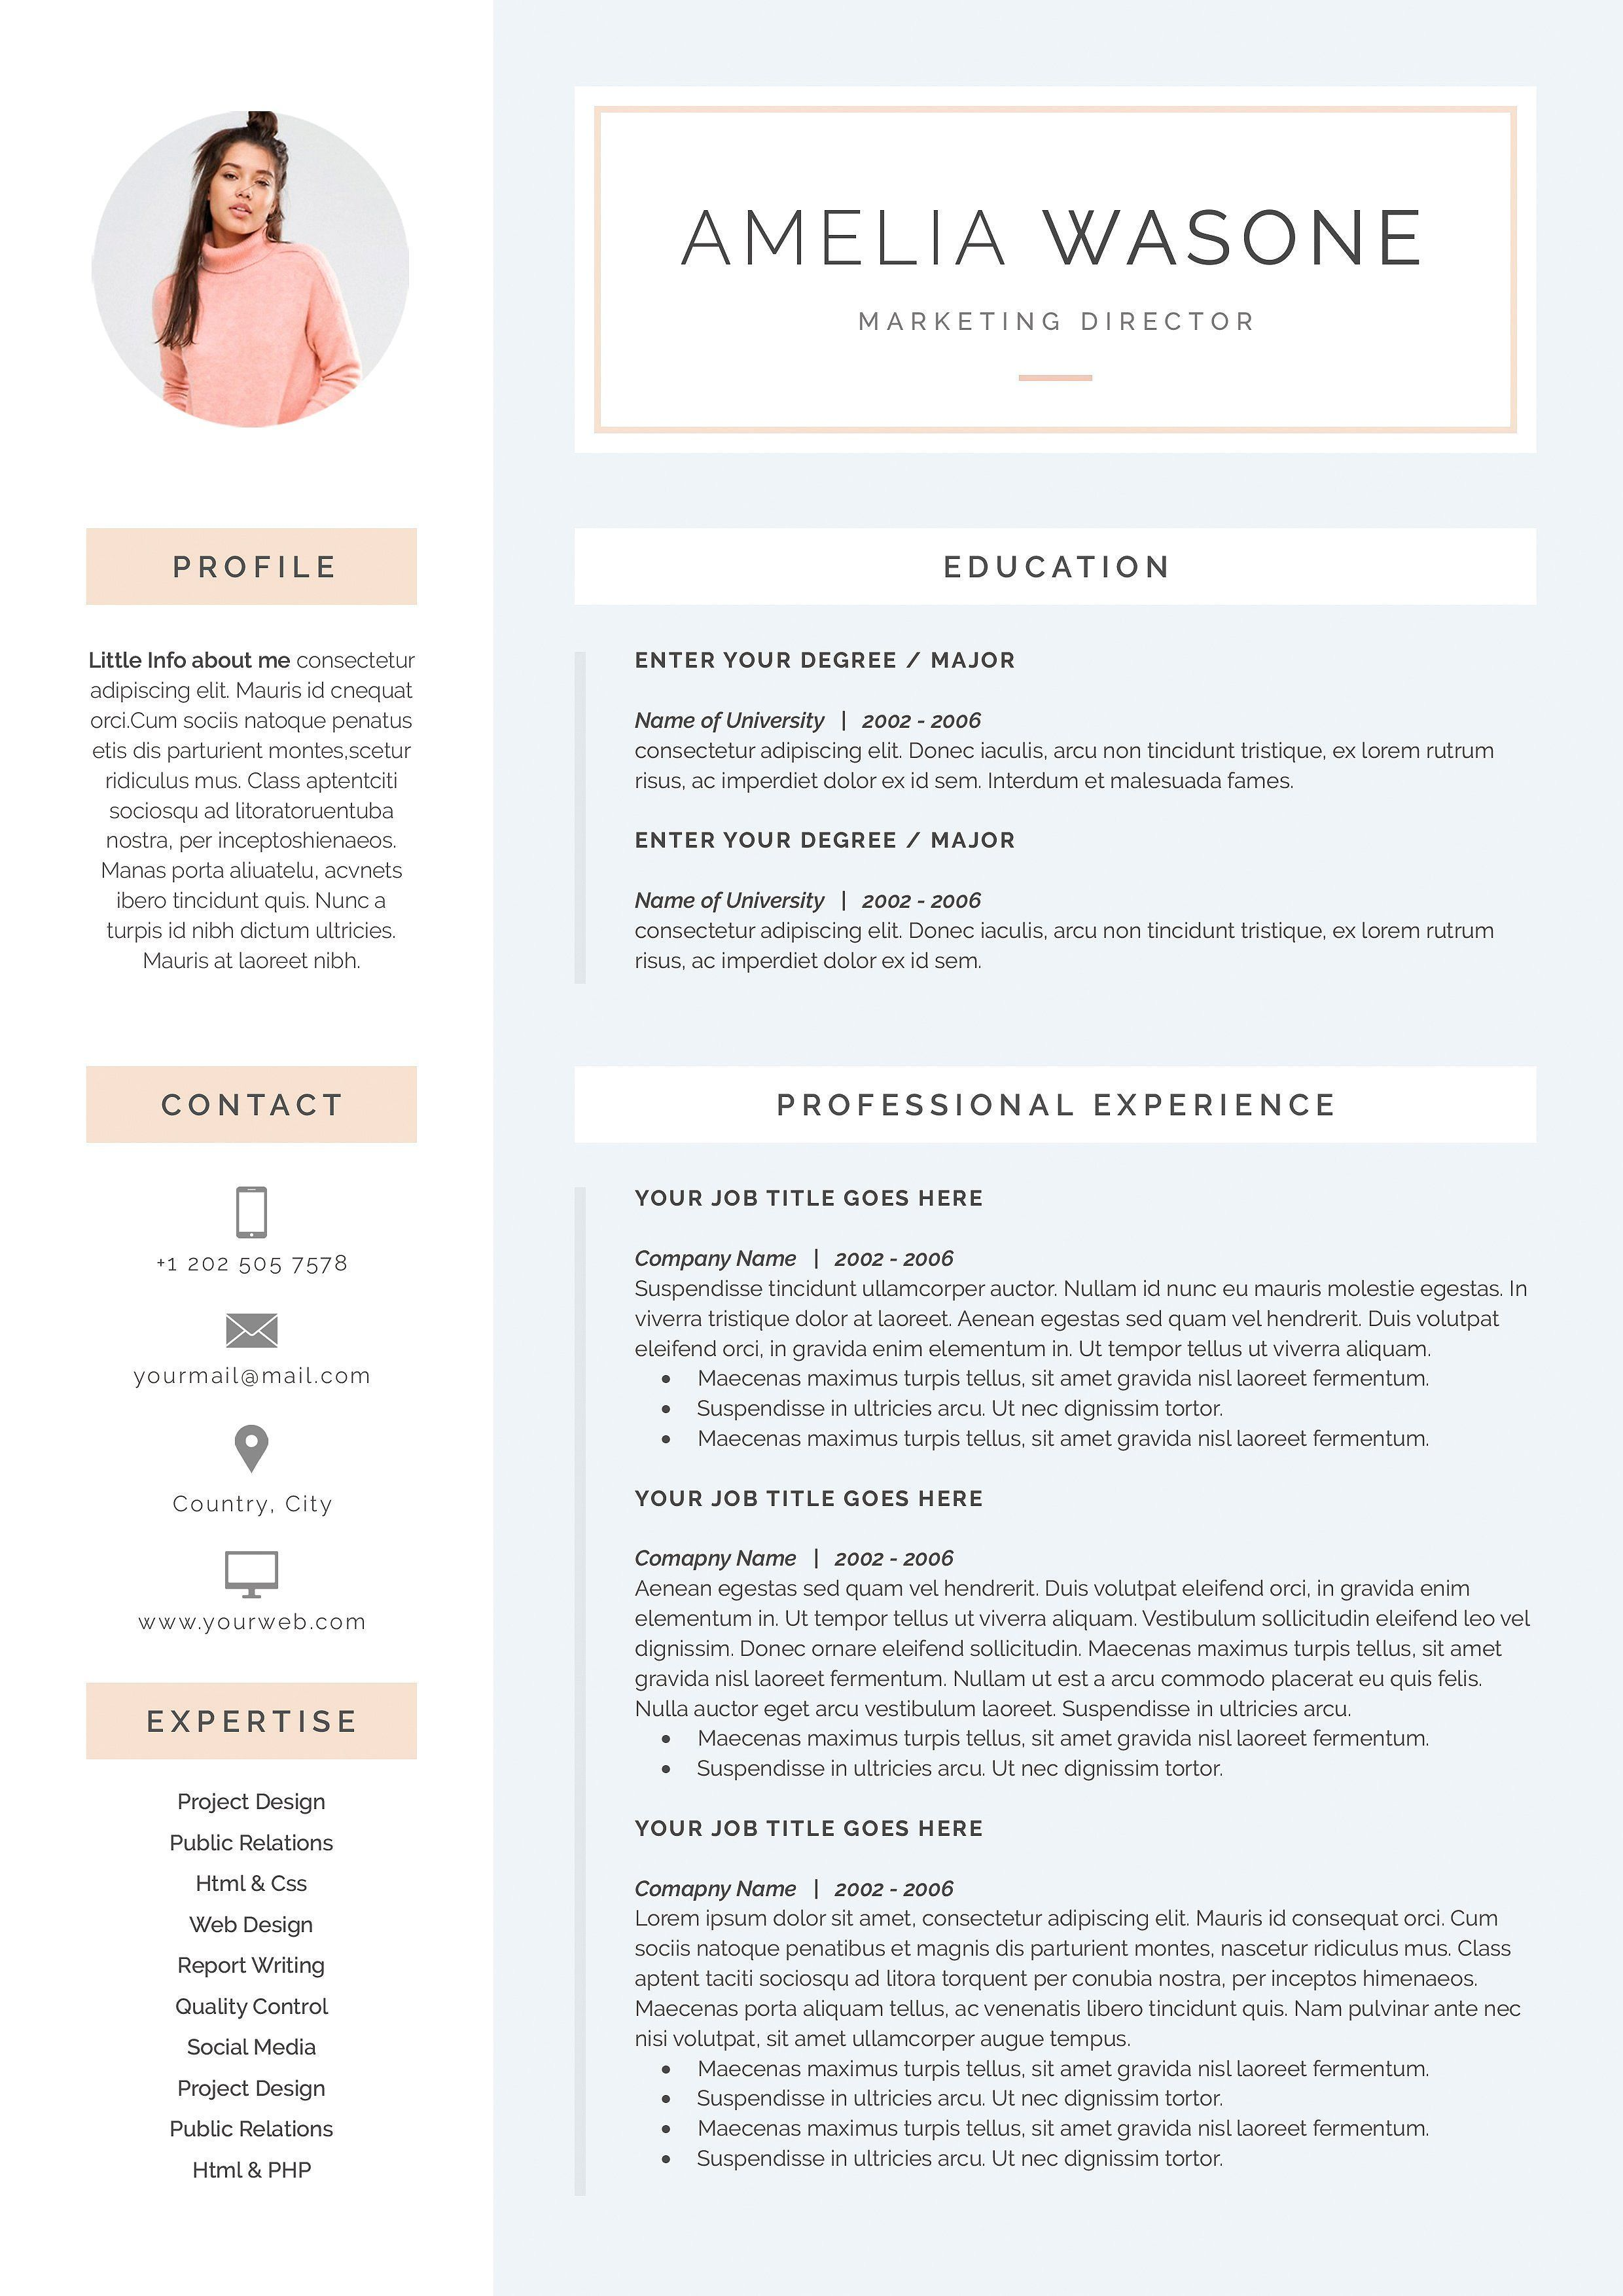 Word Resume Cover Letter Template By Demedev On Creativemarket Ad Cover Letter For Resume Resume Cover Letter Template Resume Design Template